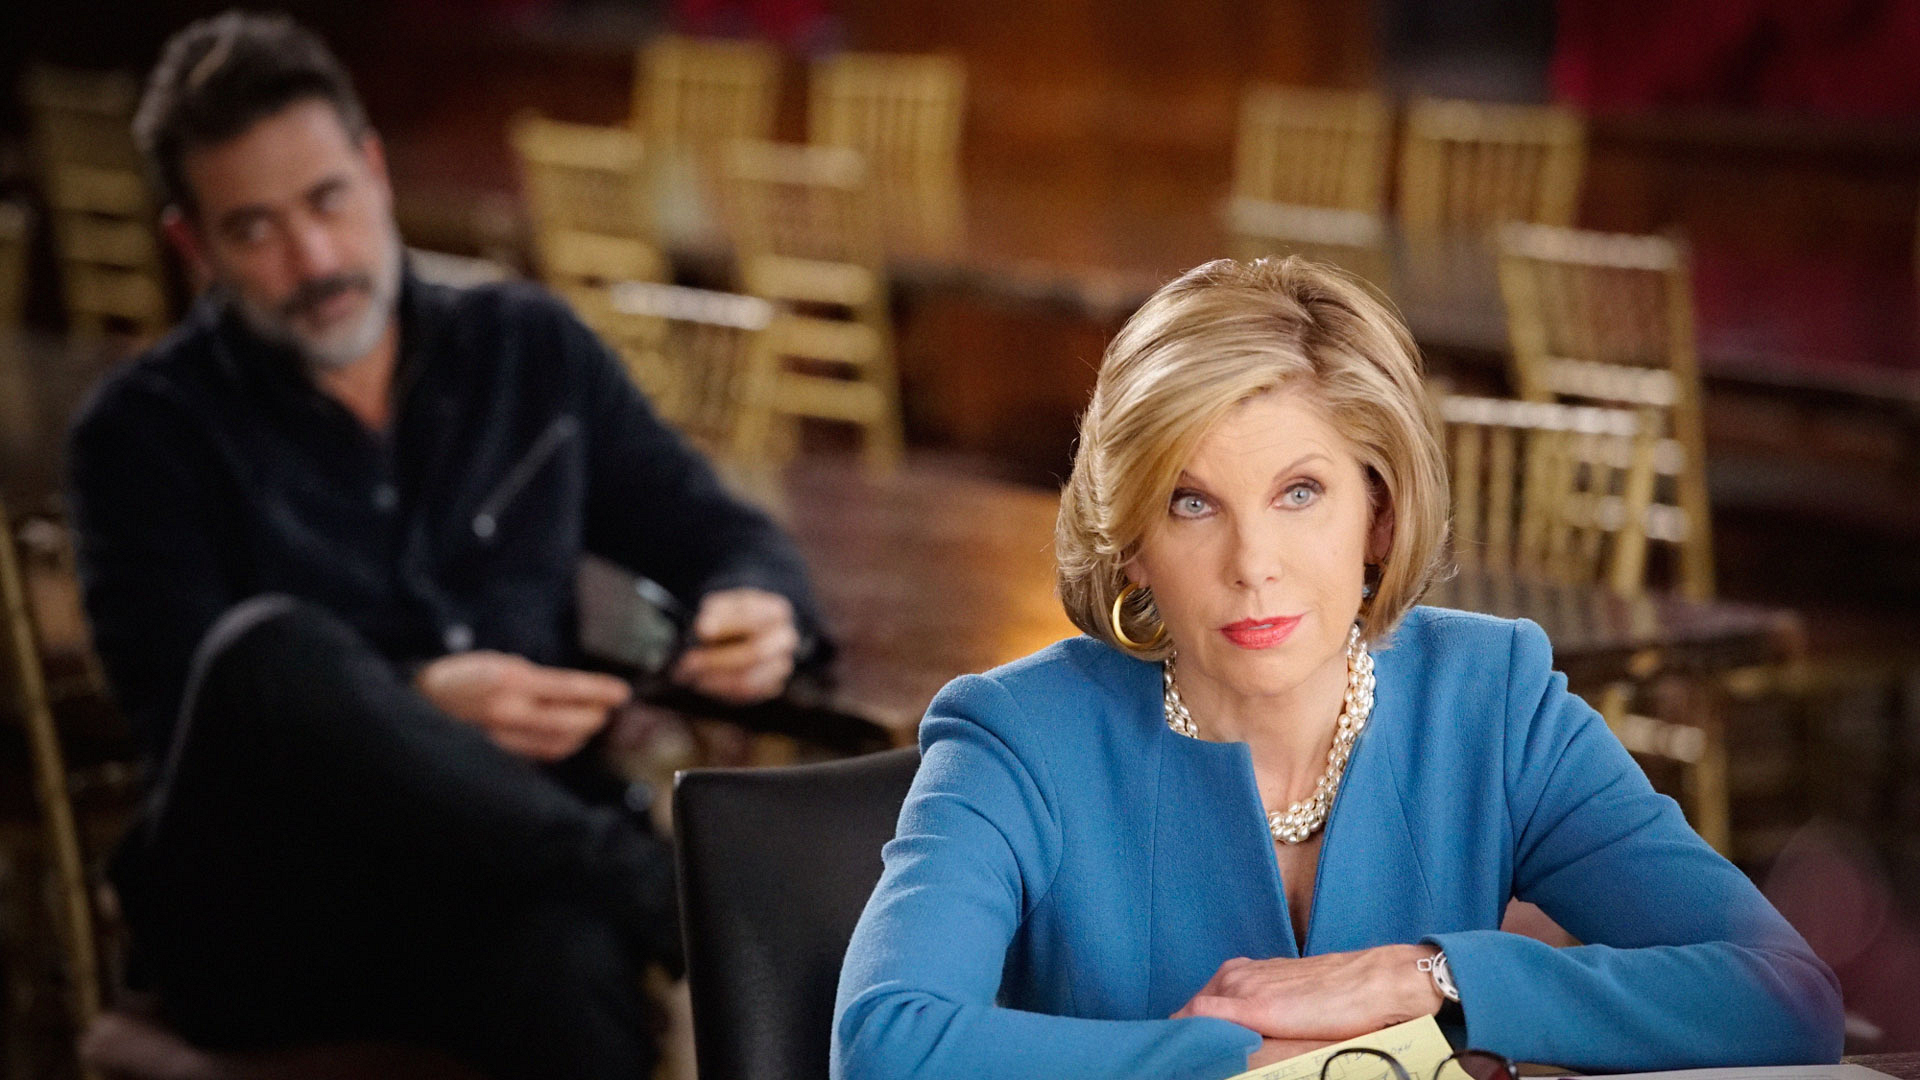 Jeffrey Dean Morgan as Jason Crouse and Christine Baranski as Diane Lockhart